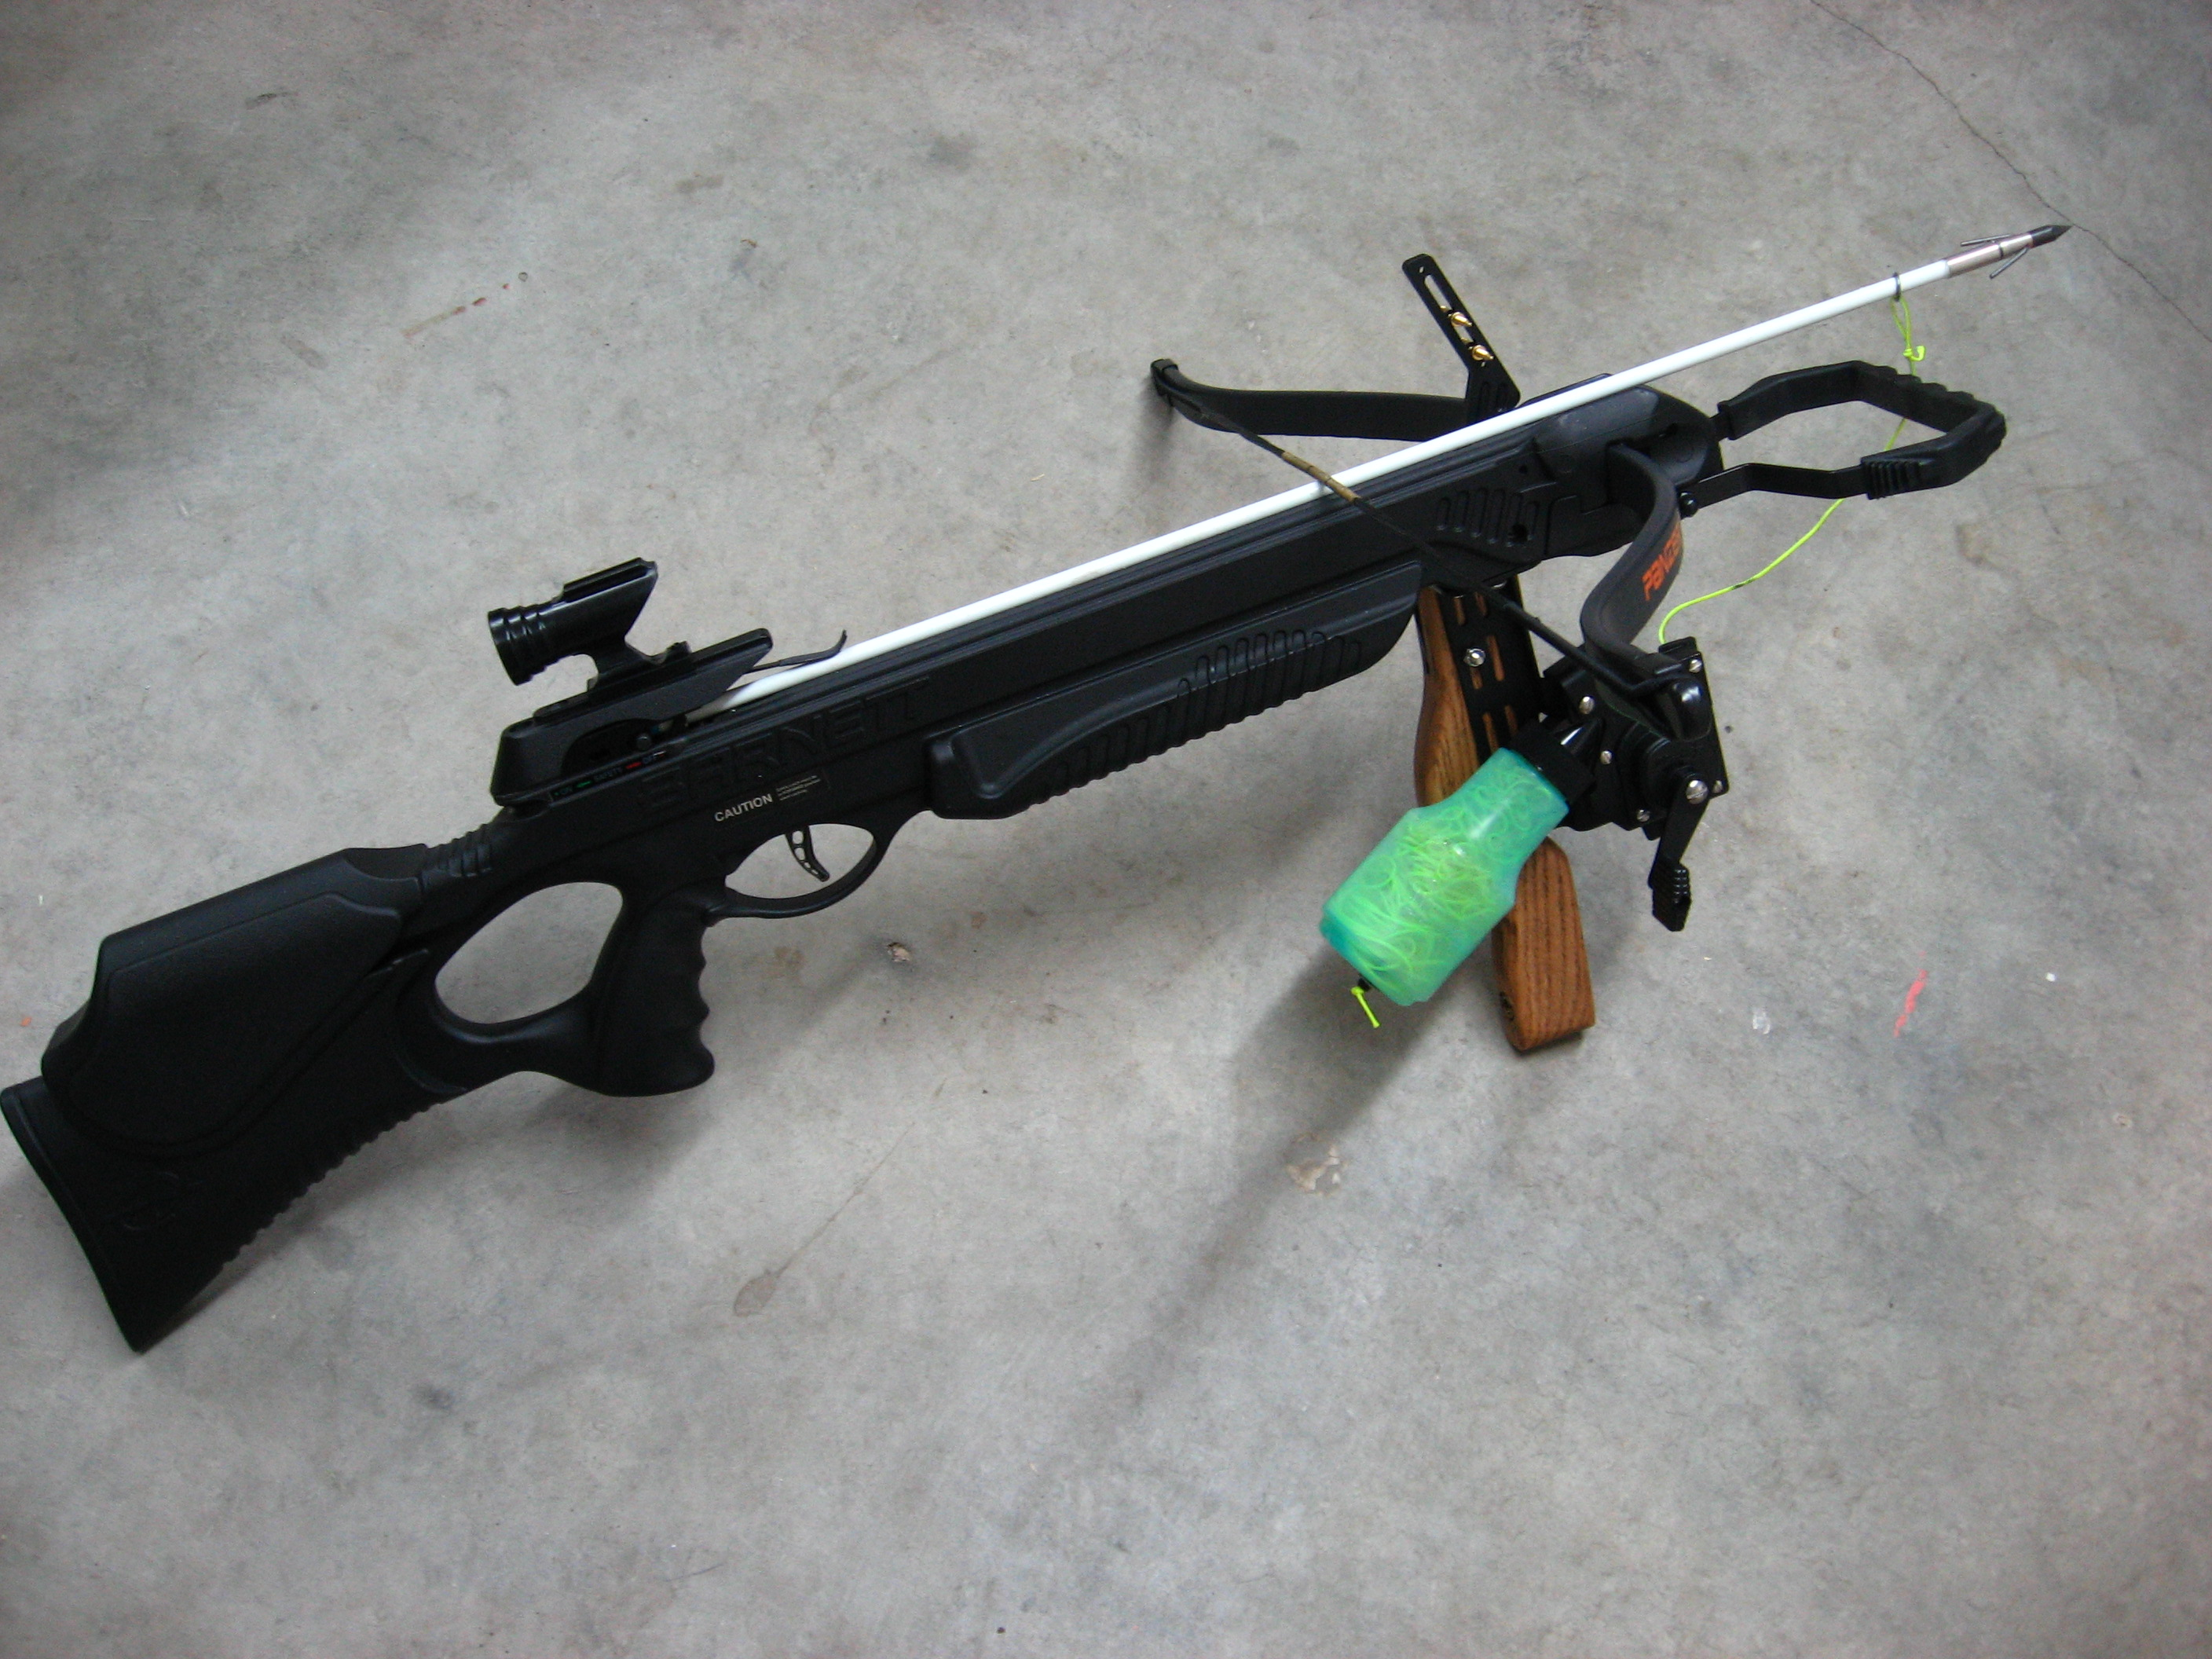 Gator pro panzer crossbow 3 or more stone gear for Crossbow fishing kit